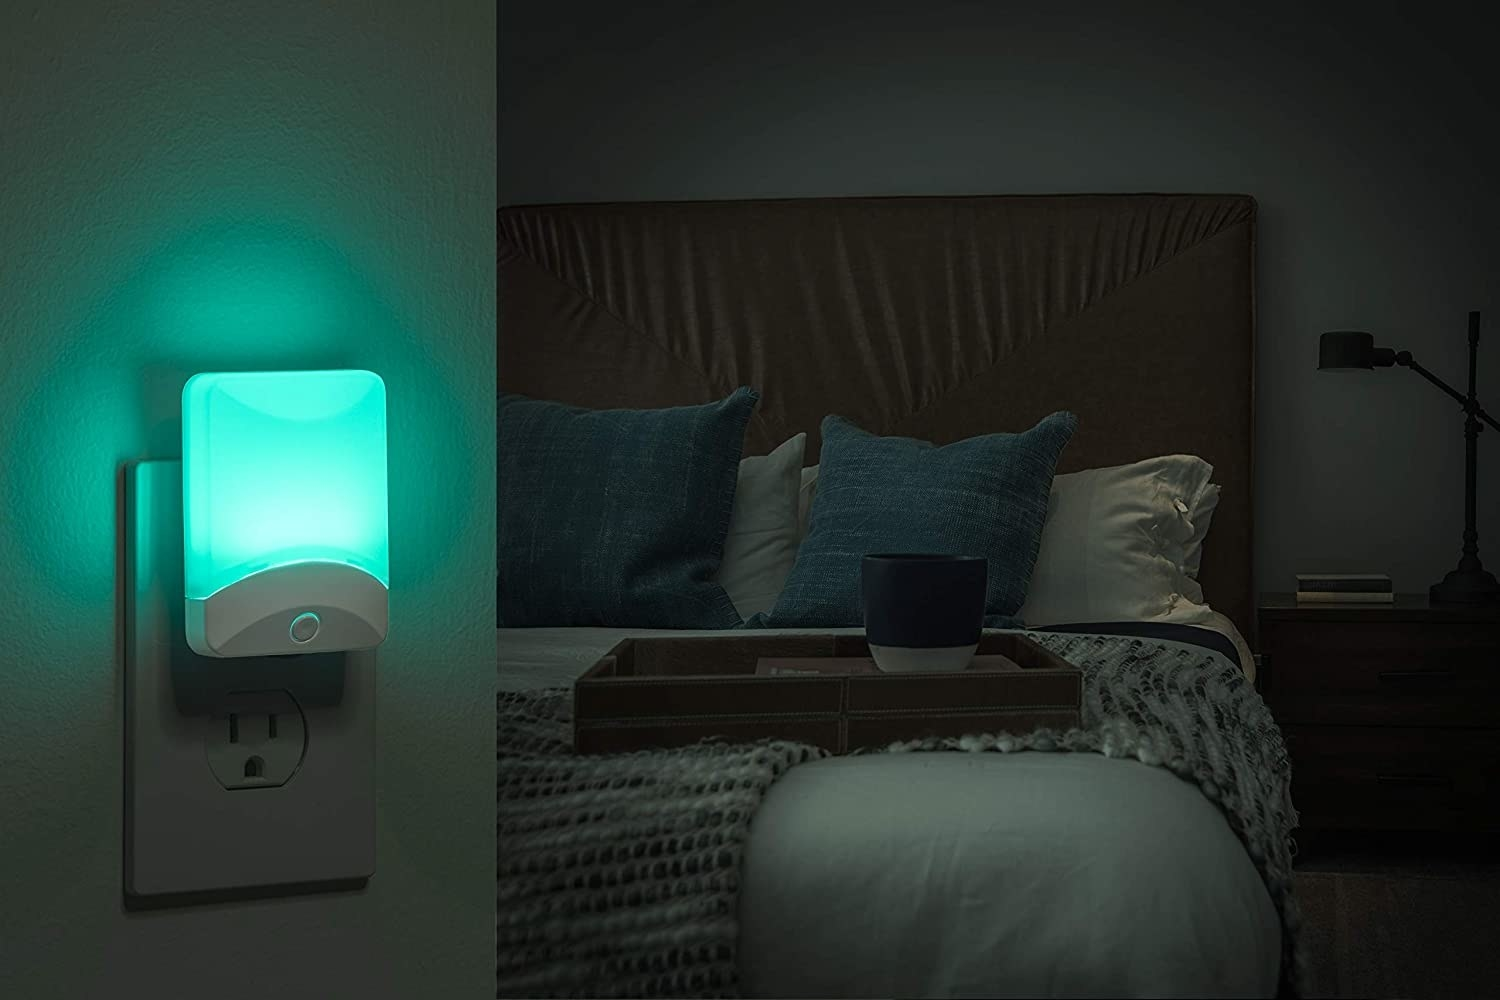 The nightlight plugged into a bedroom wall in front of a bed